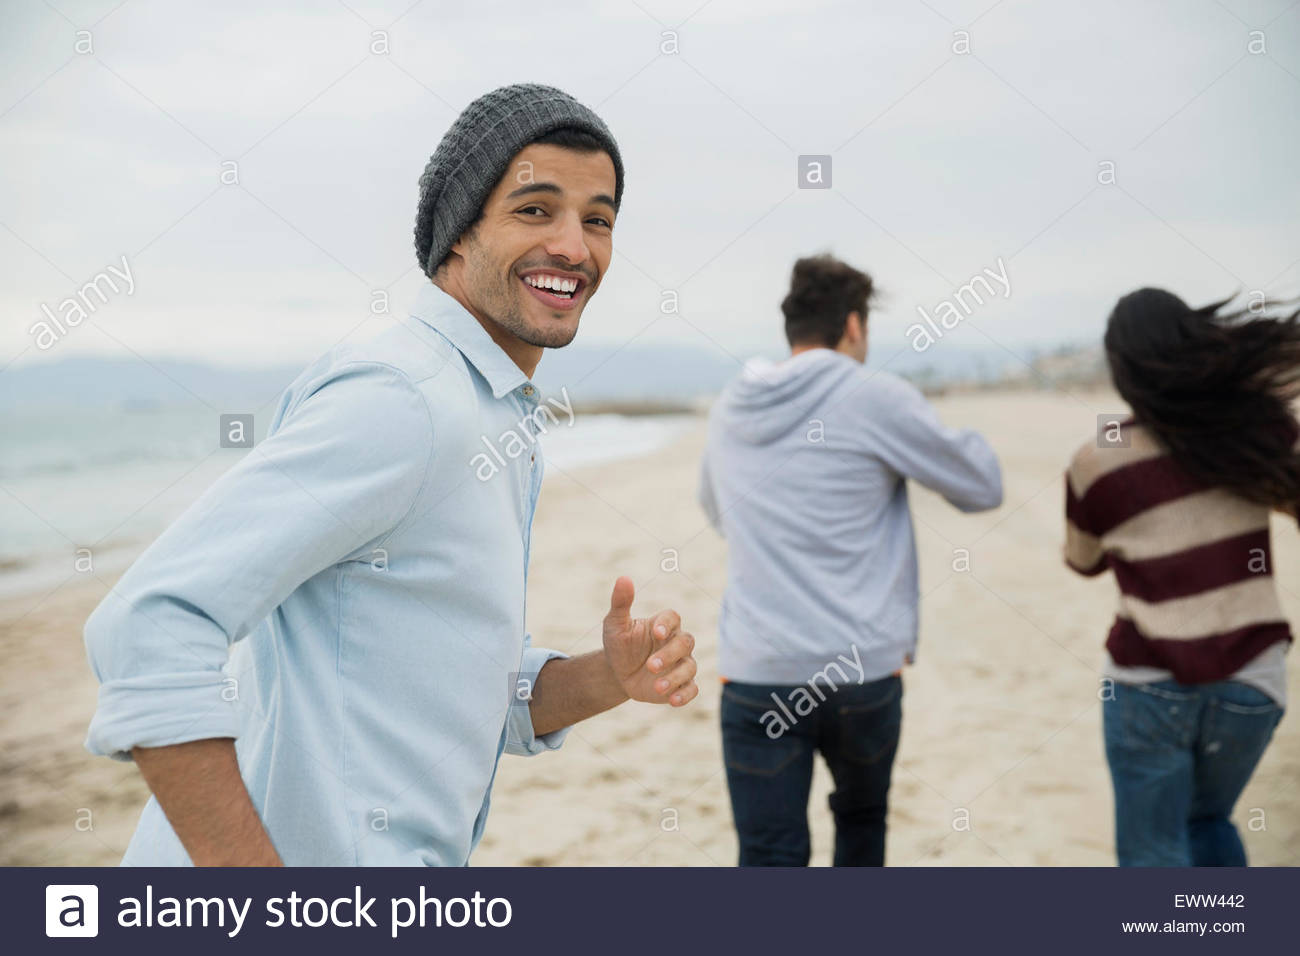 Portrait smiling man running with friends on beach - Stock Image